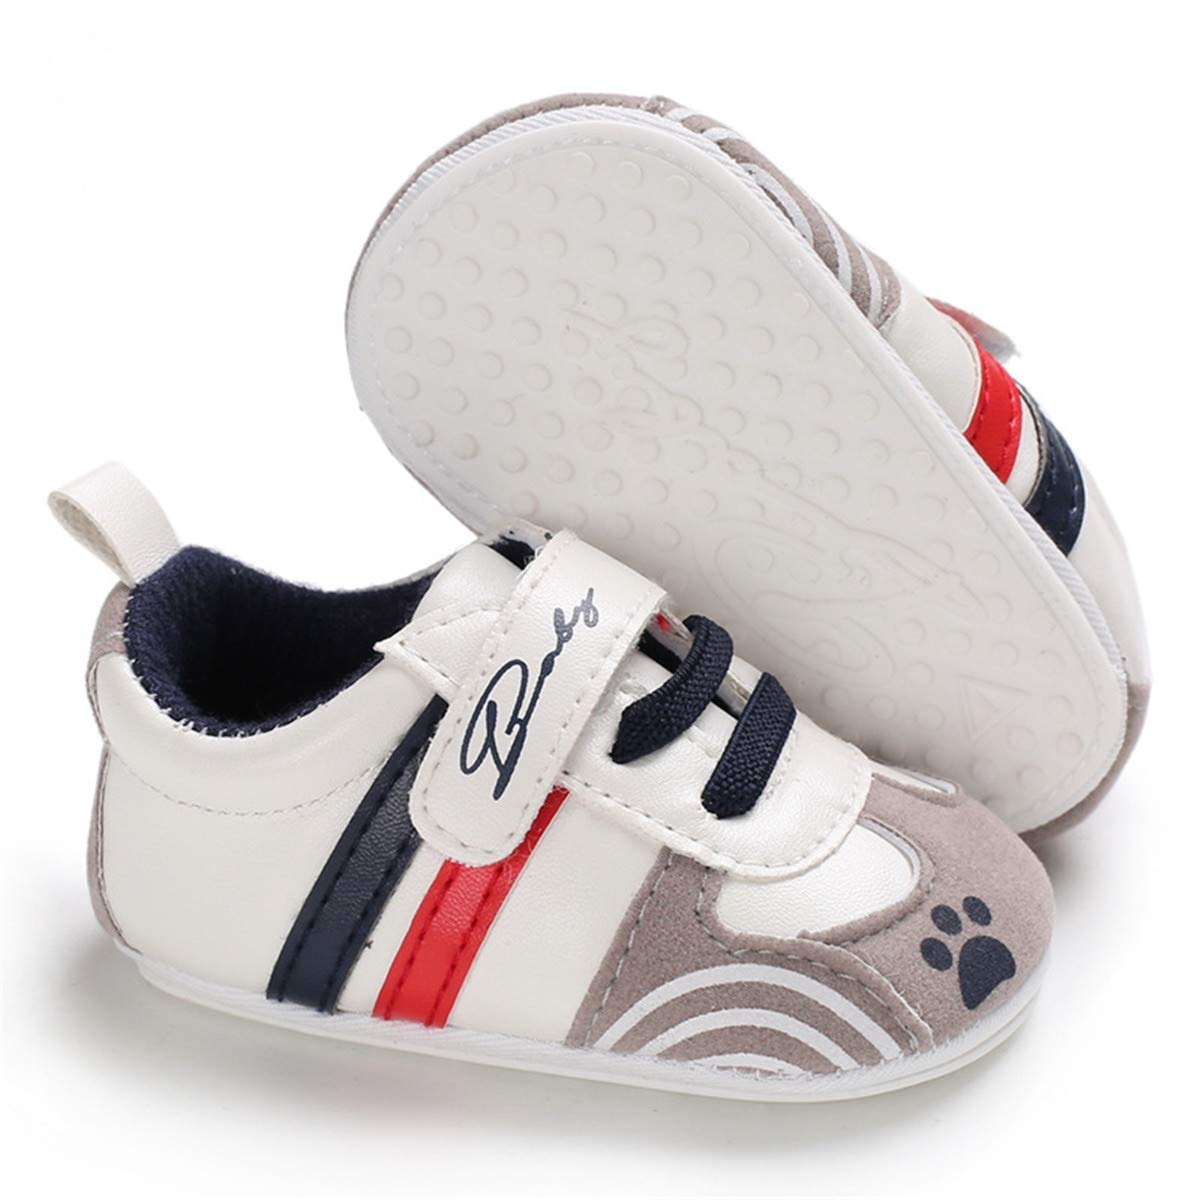 Sakuracan Baby Boys Girls Canvas Shoes Soft Anti-Slip Sole Sneakers Newborn Infant First Walkers Shoes